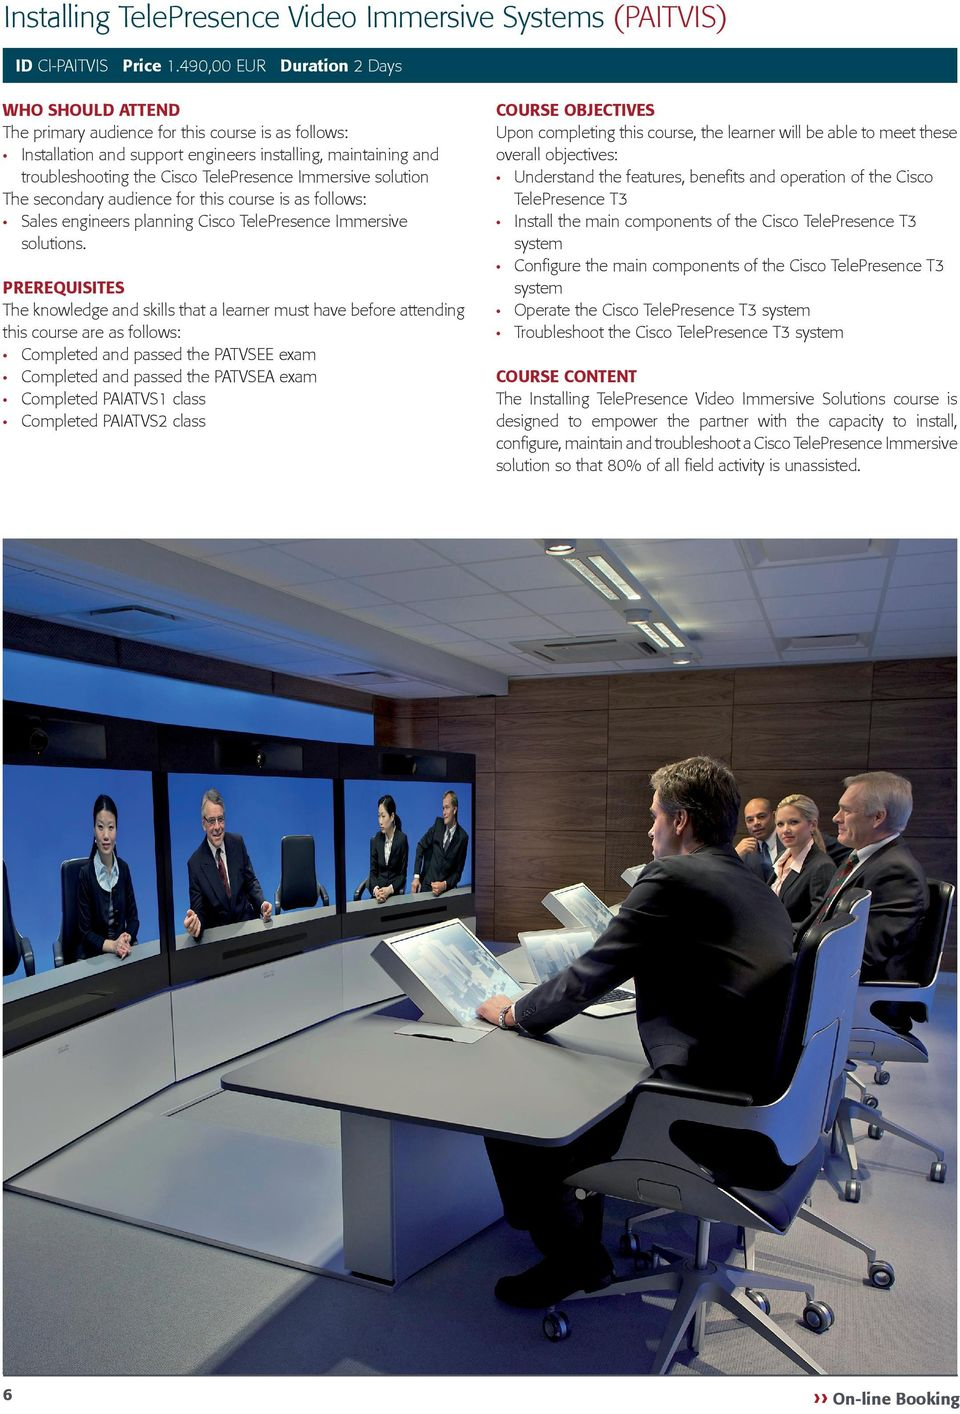 The secondary audience for this course is as follows: Sales engineers planning Cisco TelePresence Immersive solutions.